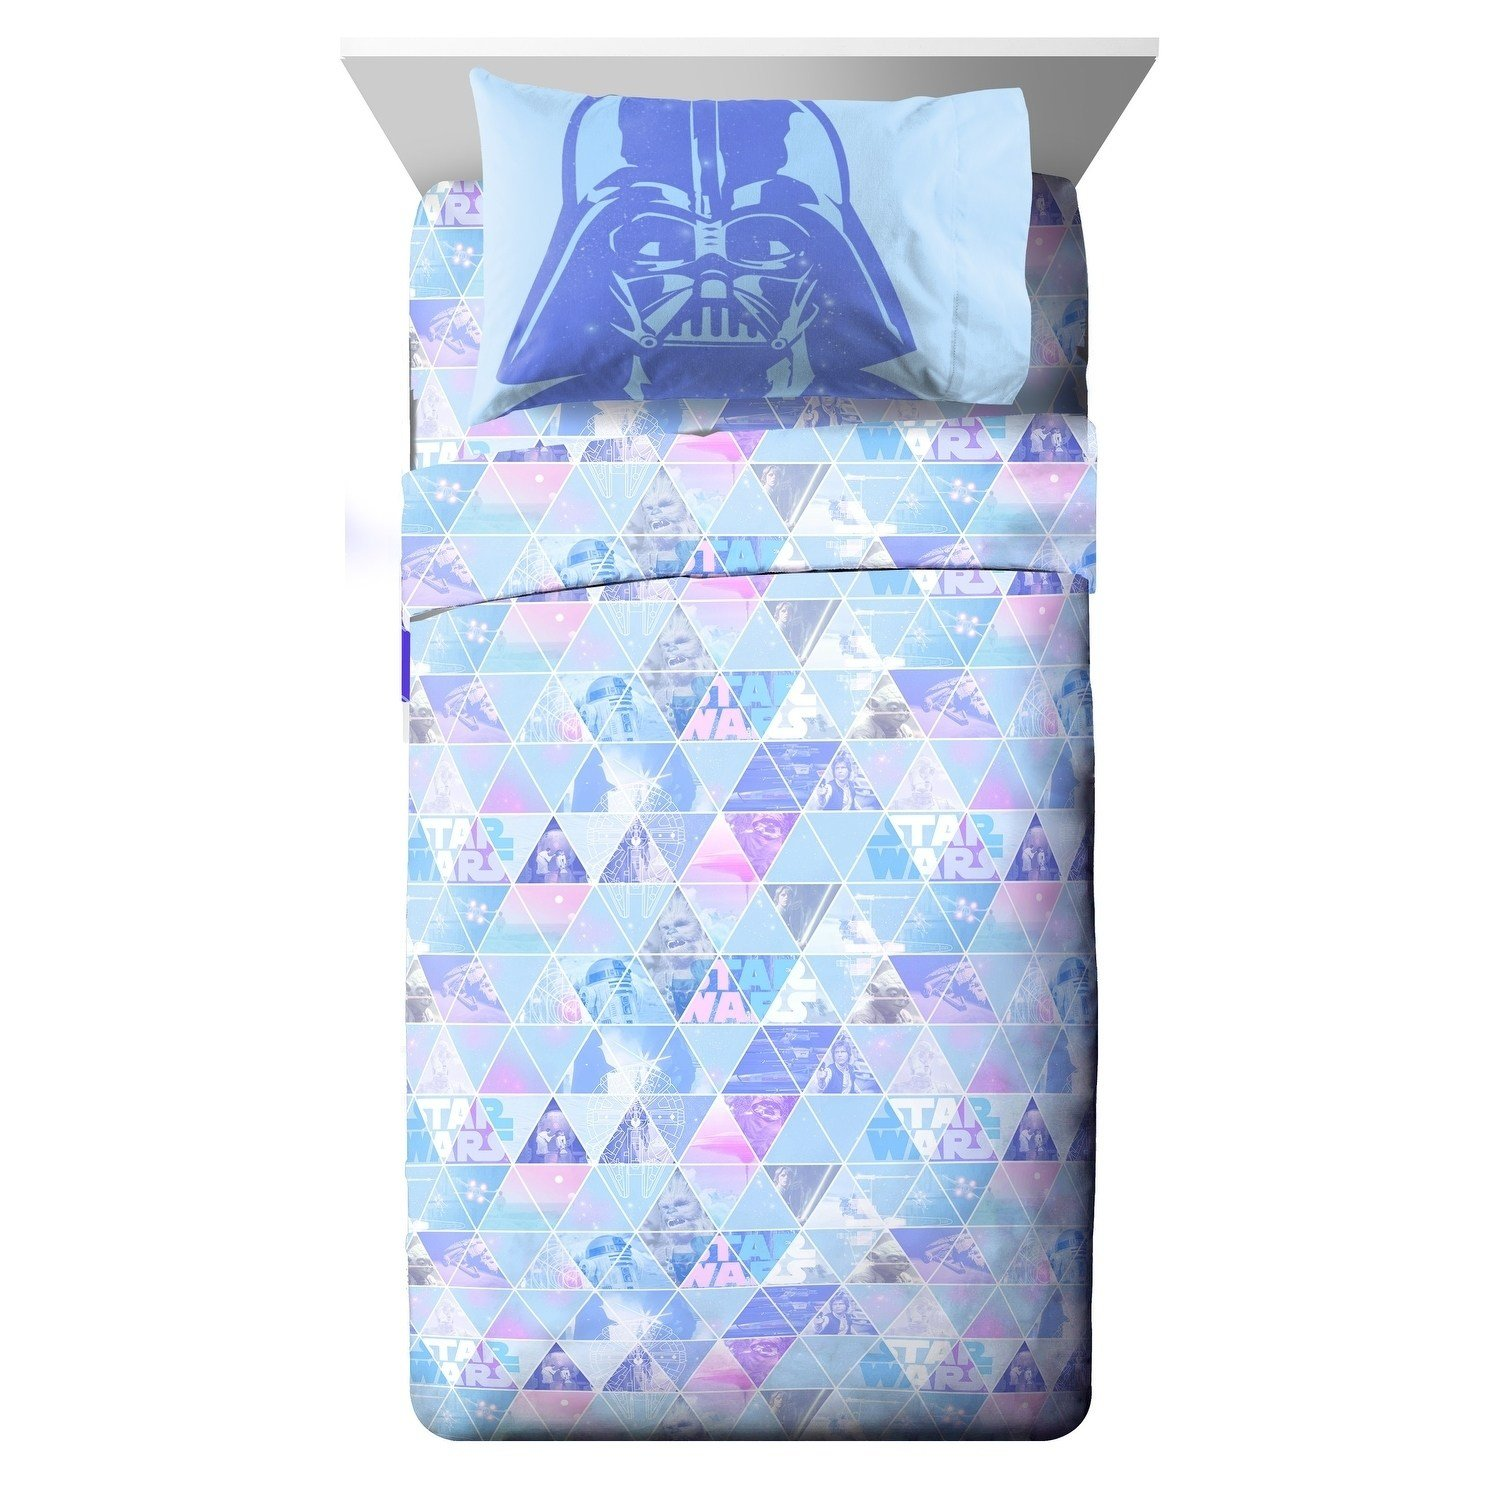 CA 3 Piece Kids Girls Teal Blue Purple Star Wars Sheet Set Twin Sized, Girly Pink Starwars Bedding Darth Vader Triangle Pattern Chewbacca Stormtroopers Movie Themed Galaxy Space R2-D2, Microfiber